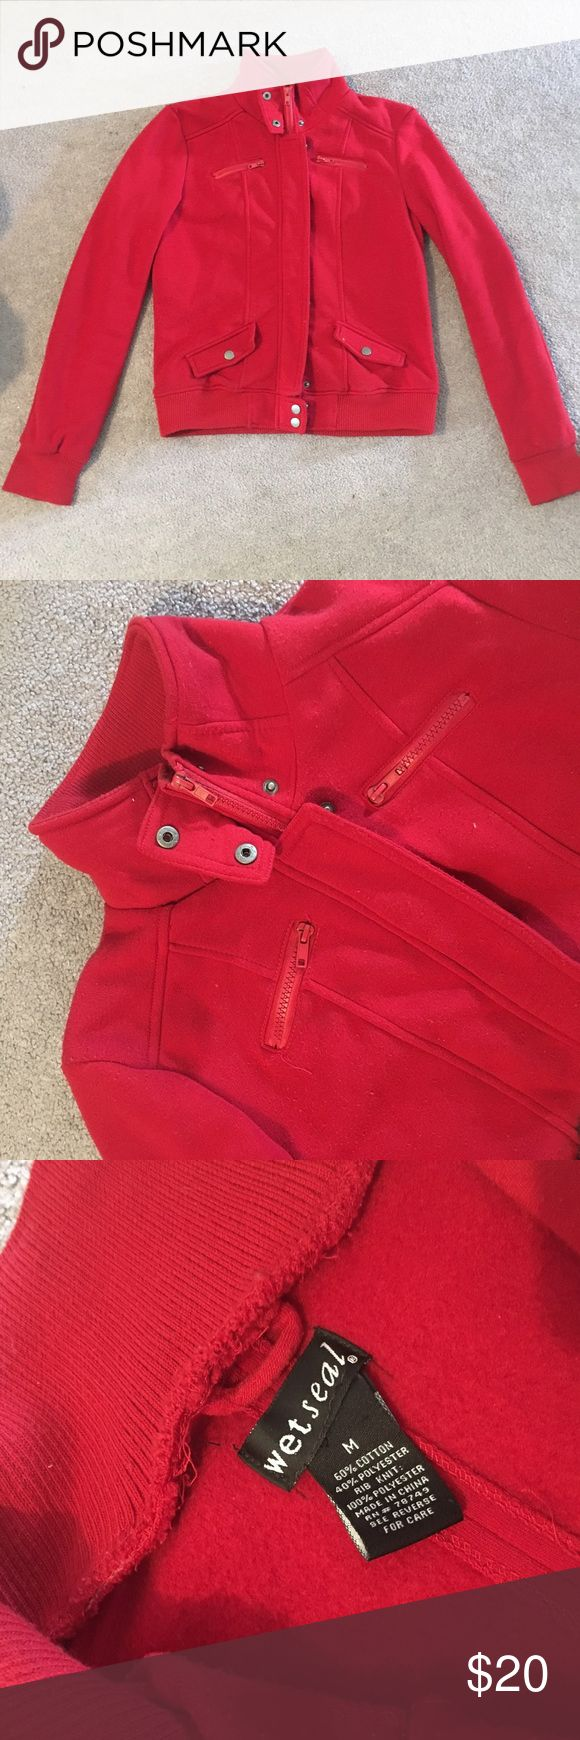 😍 STUNNING women's red wind jacket ❤️ this is a used wet seal jacket that was my go to for a while. i just got a new one so wanted to hand this down. the color is fabulous! makes an old statement and looks amazing on! the jacket is a nice quality and fits well on the body:) i'll consider offers so let me know if you're interested! Wet Seal Jackets & Coats